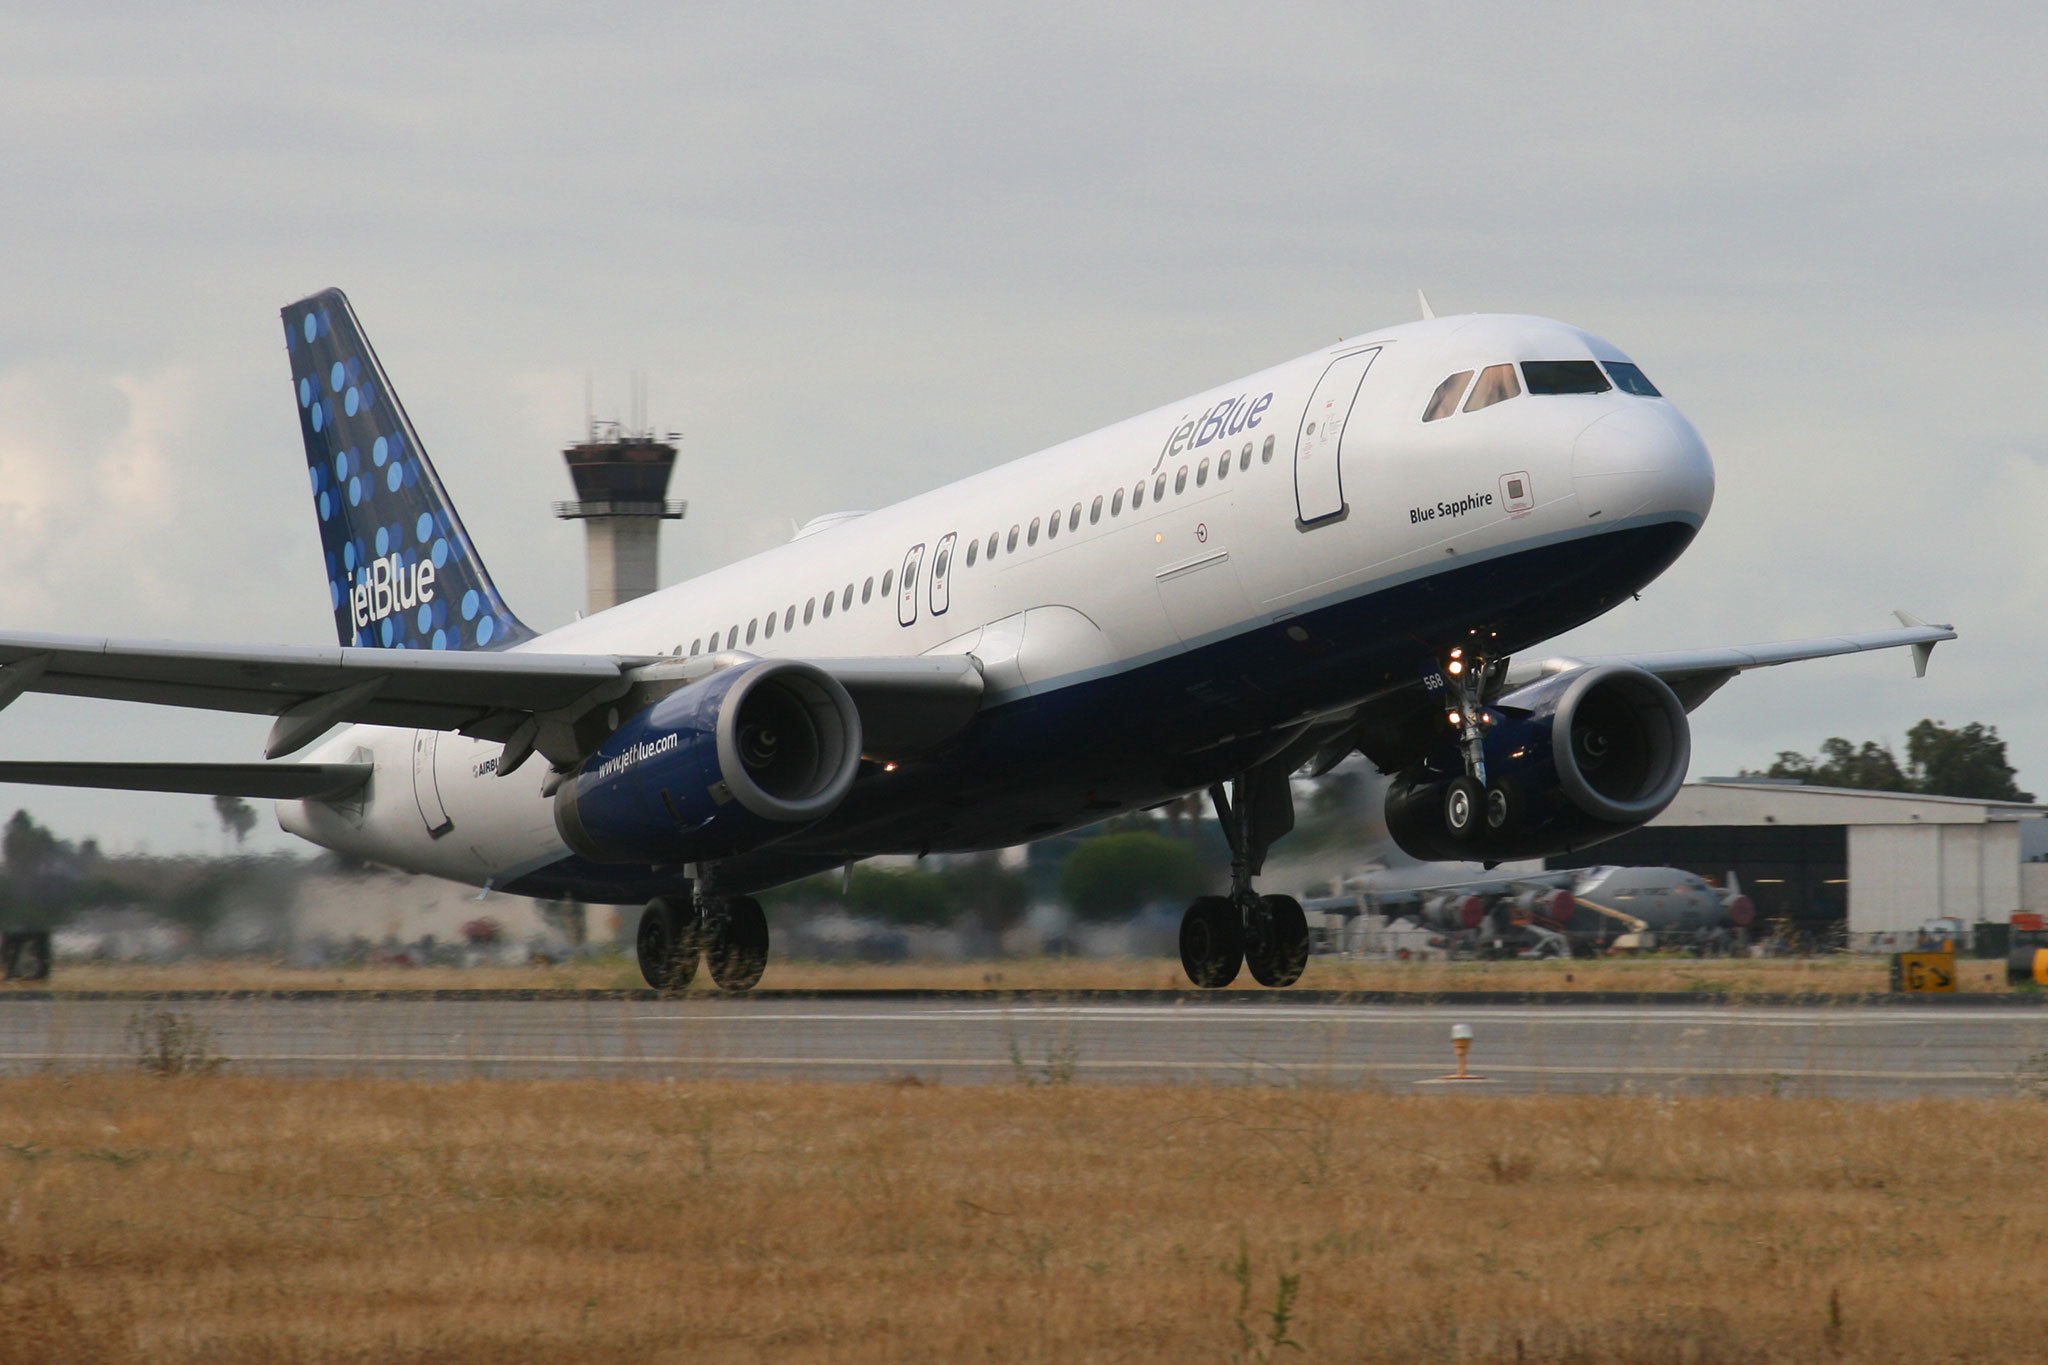 Fly across the country with JetBlue for as low as $39 if you book by tomorrow night